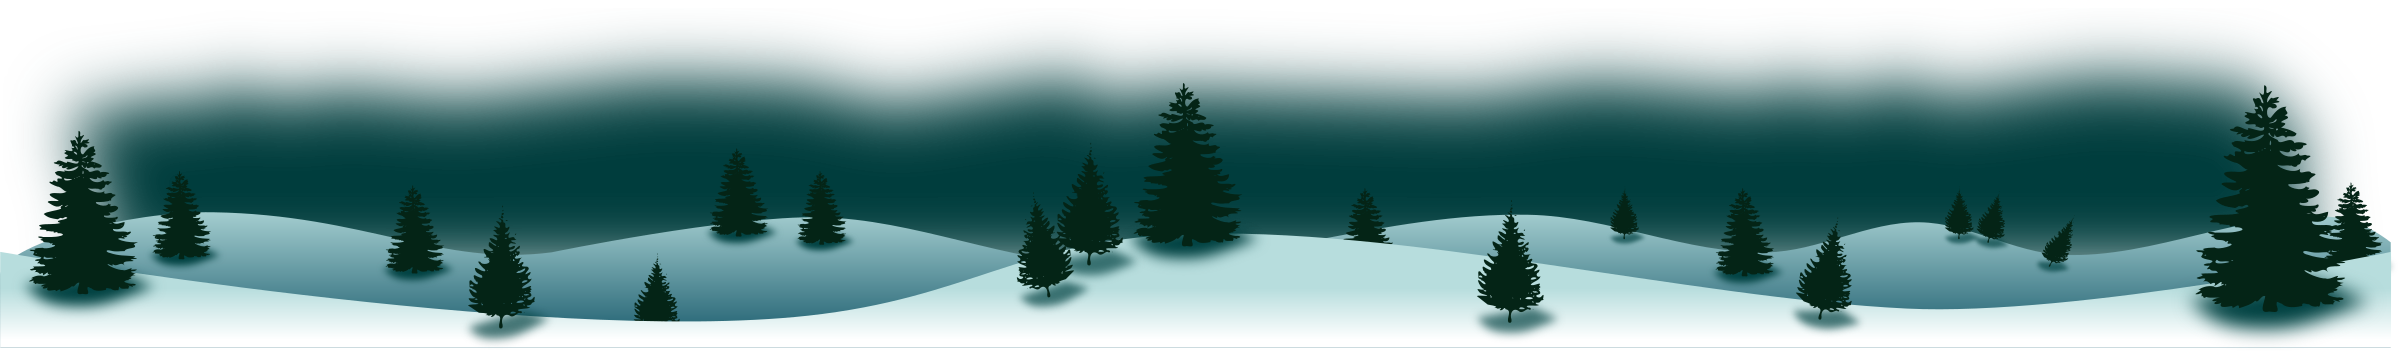 Winter Forest Panorama by salvoporjc